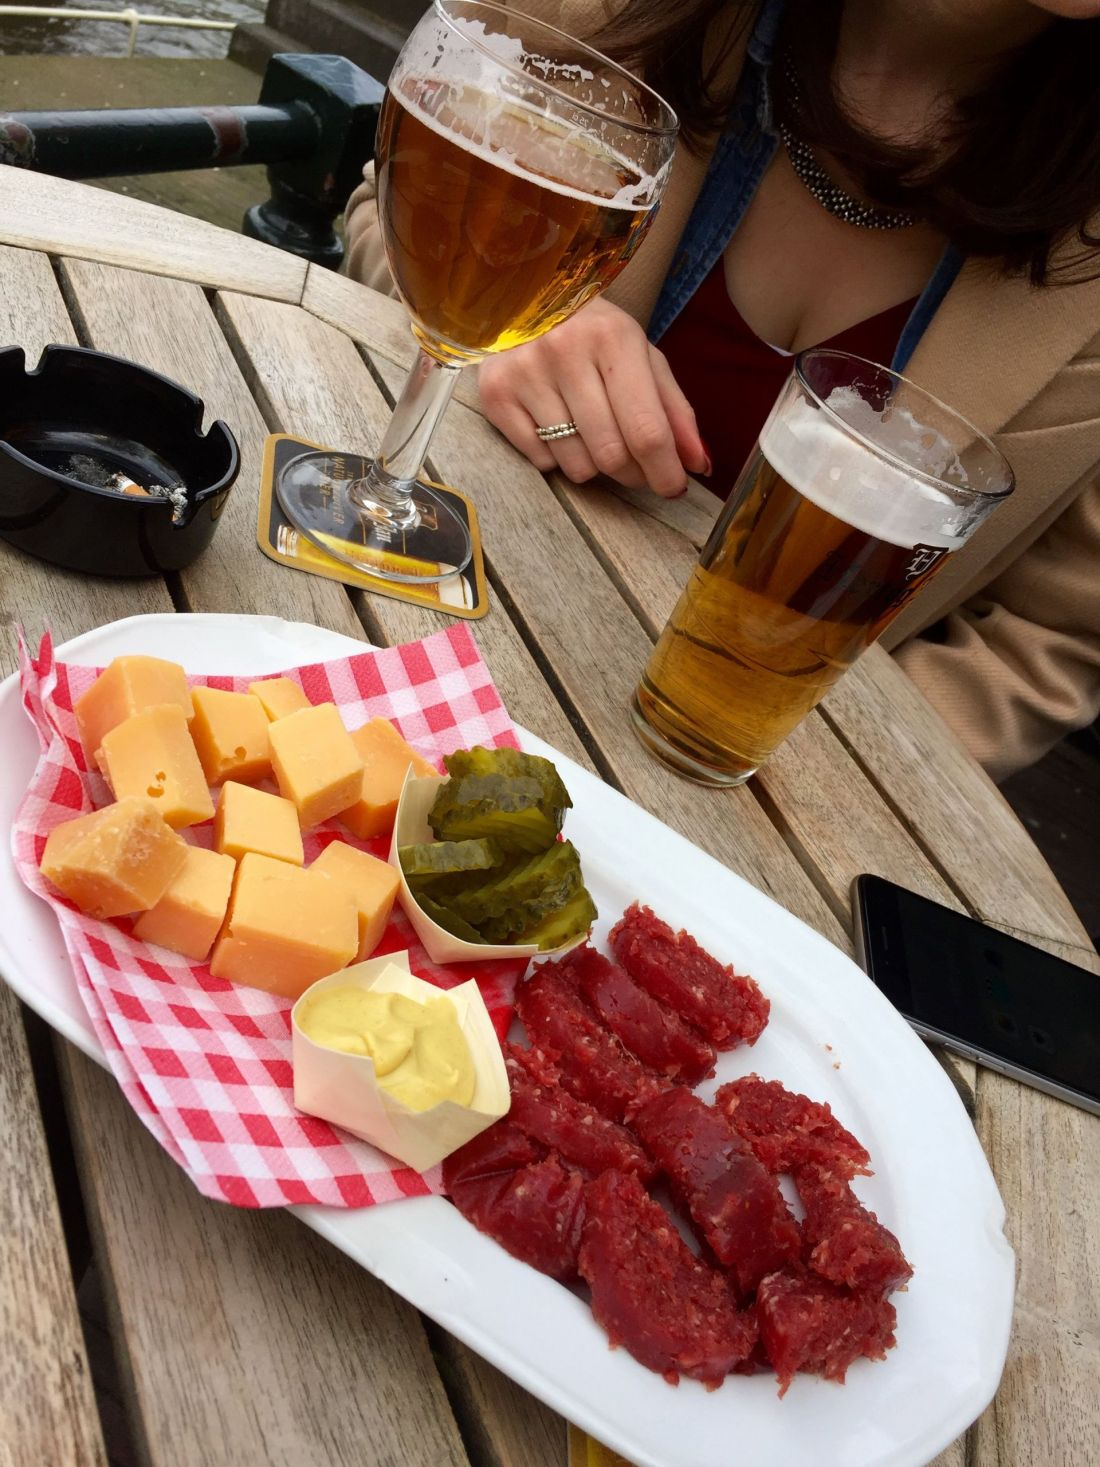 Cheese and meats from Sluyswacht